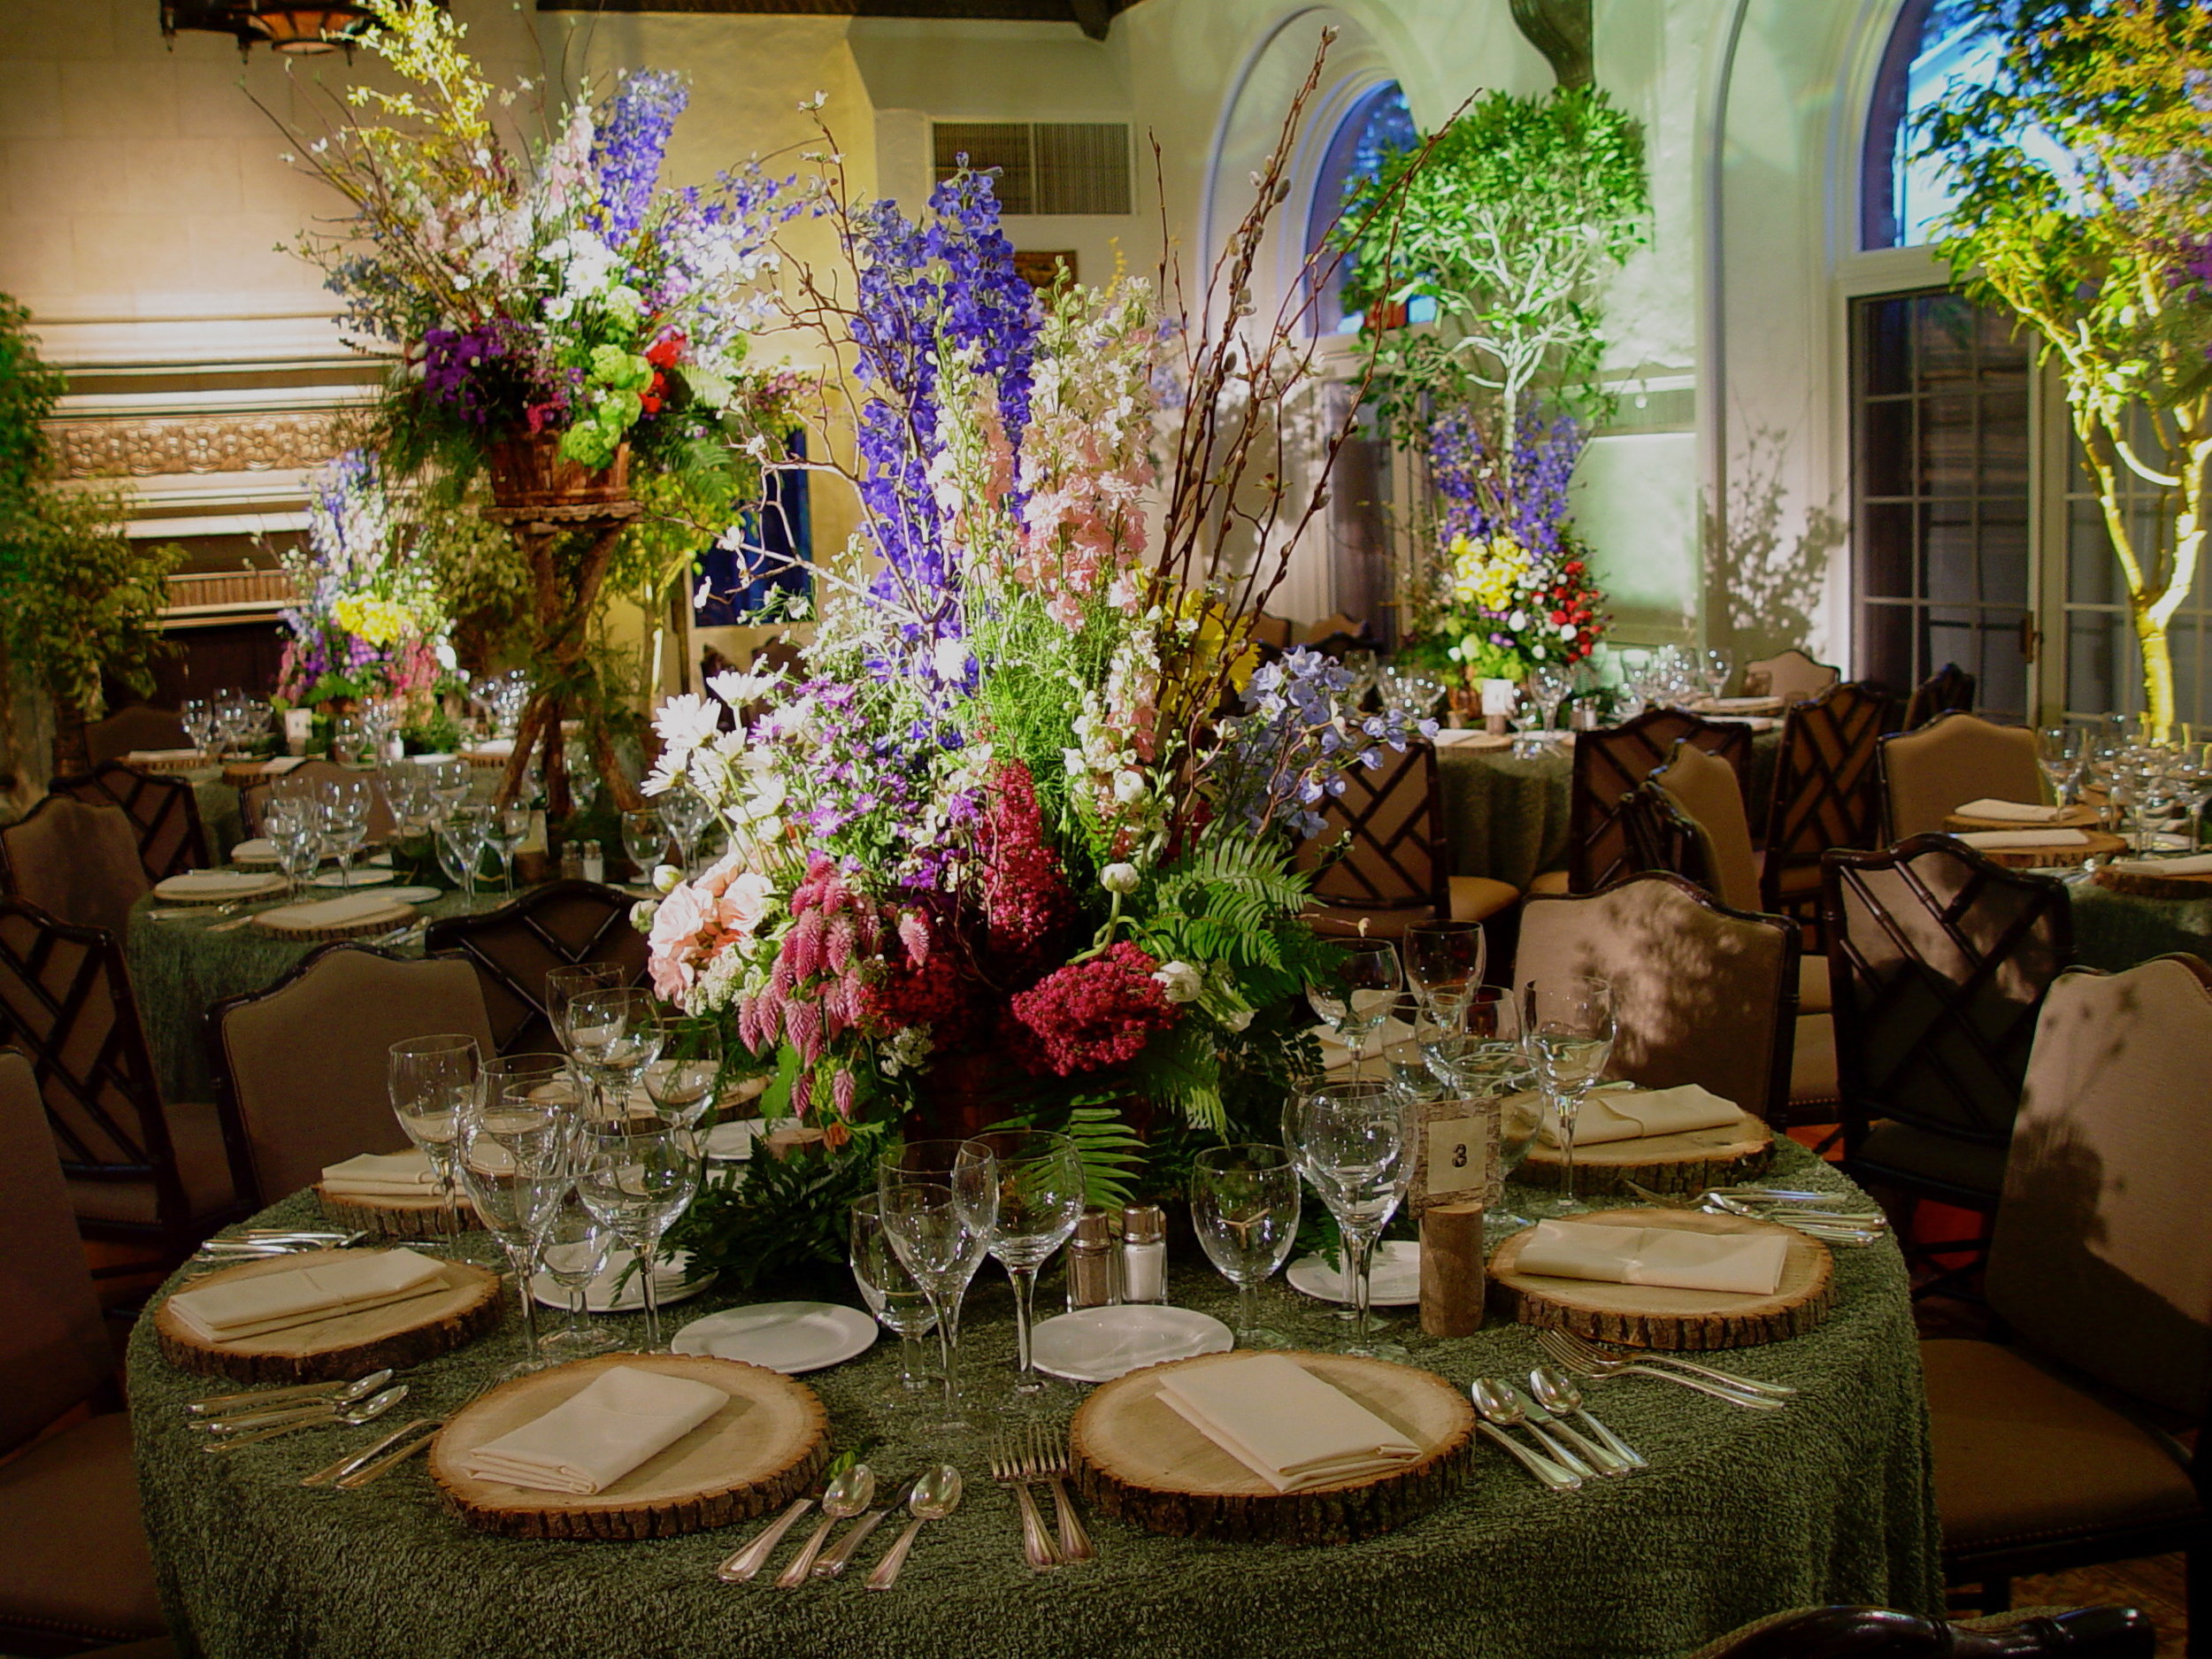 NJ+centerpiece+rental+props+decor+floral+rentals+NY+PA+bat+mitzvah+party+eggsotic+events.jpeg